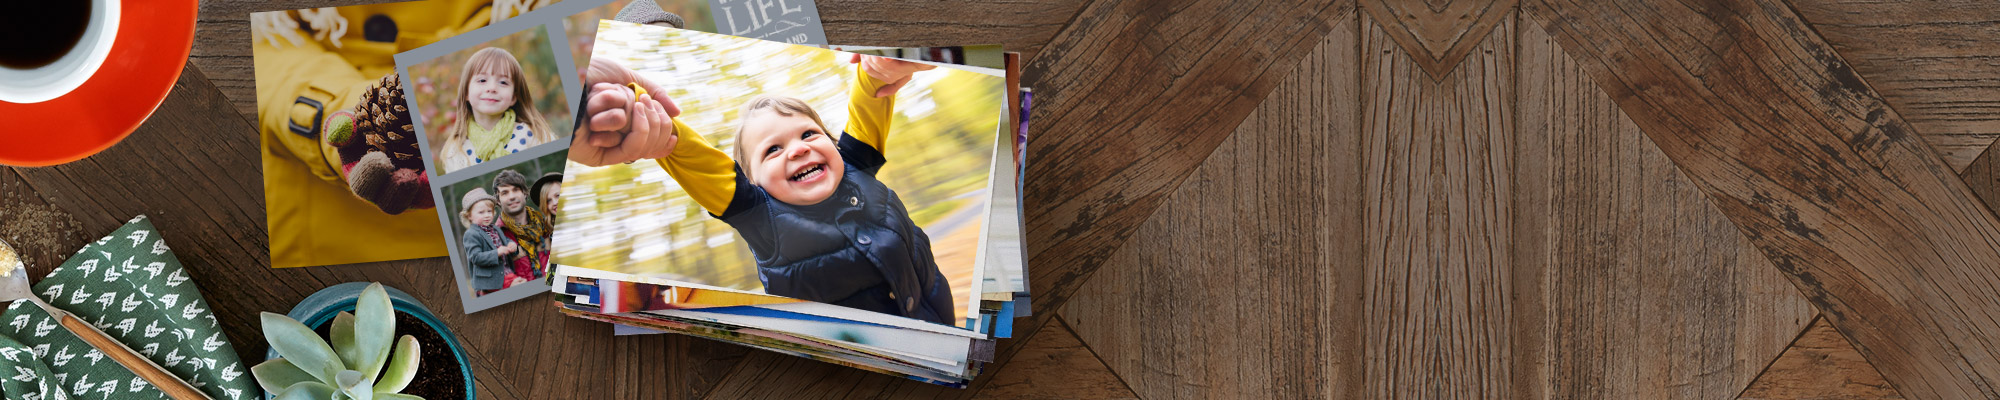 Photo and Collage Prints : Great moments you can hold onto, literally. Share them, save them, and always cherish them.